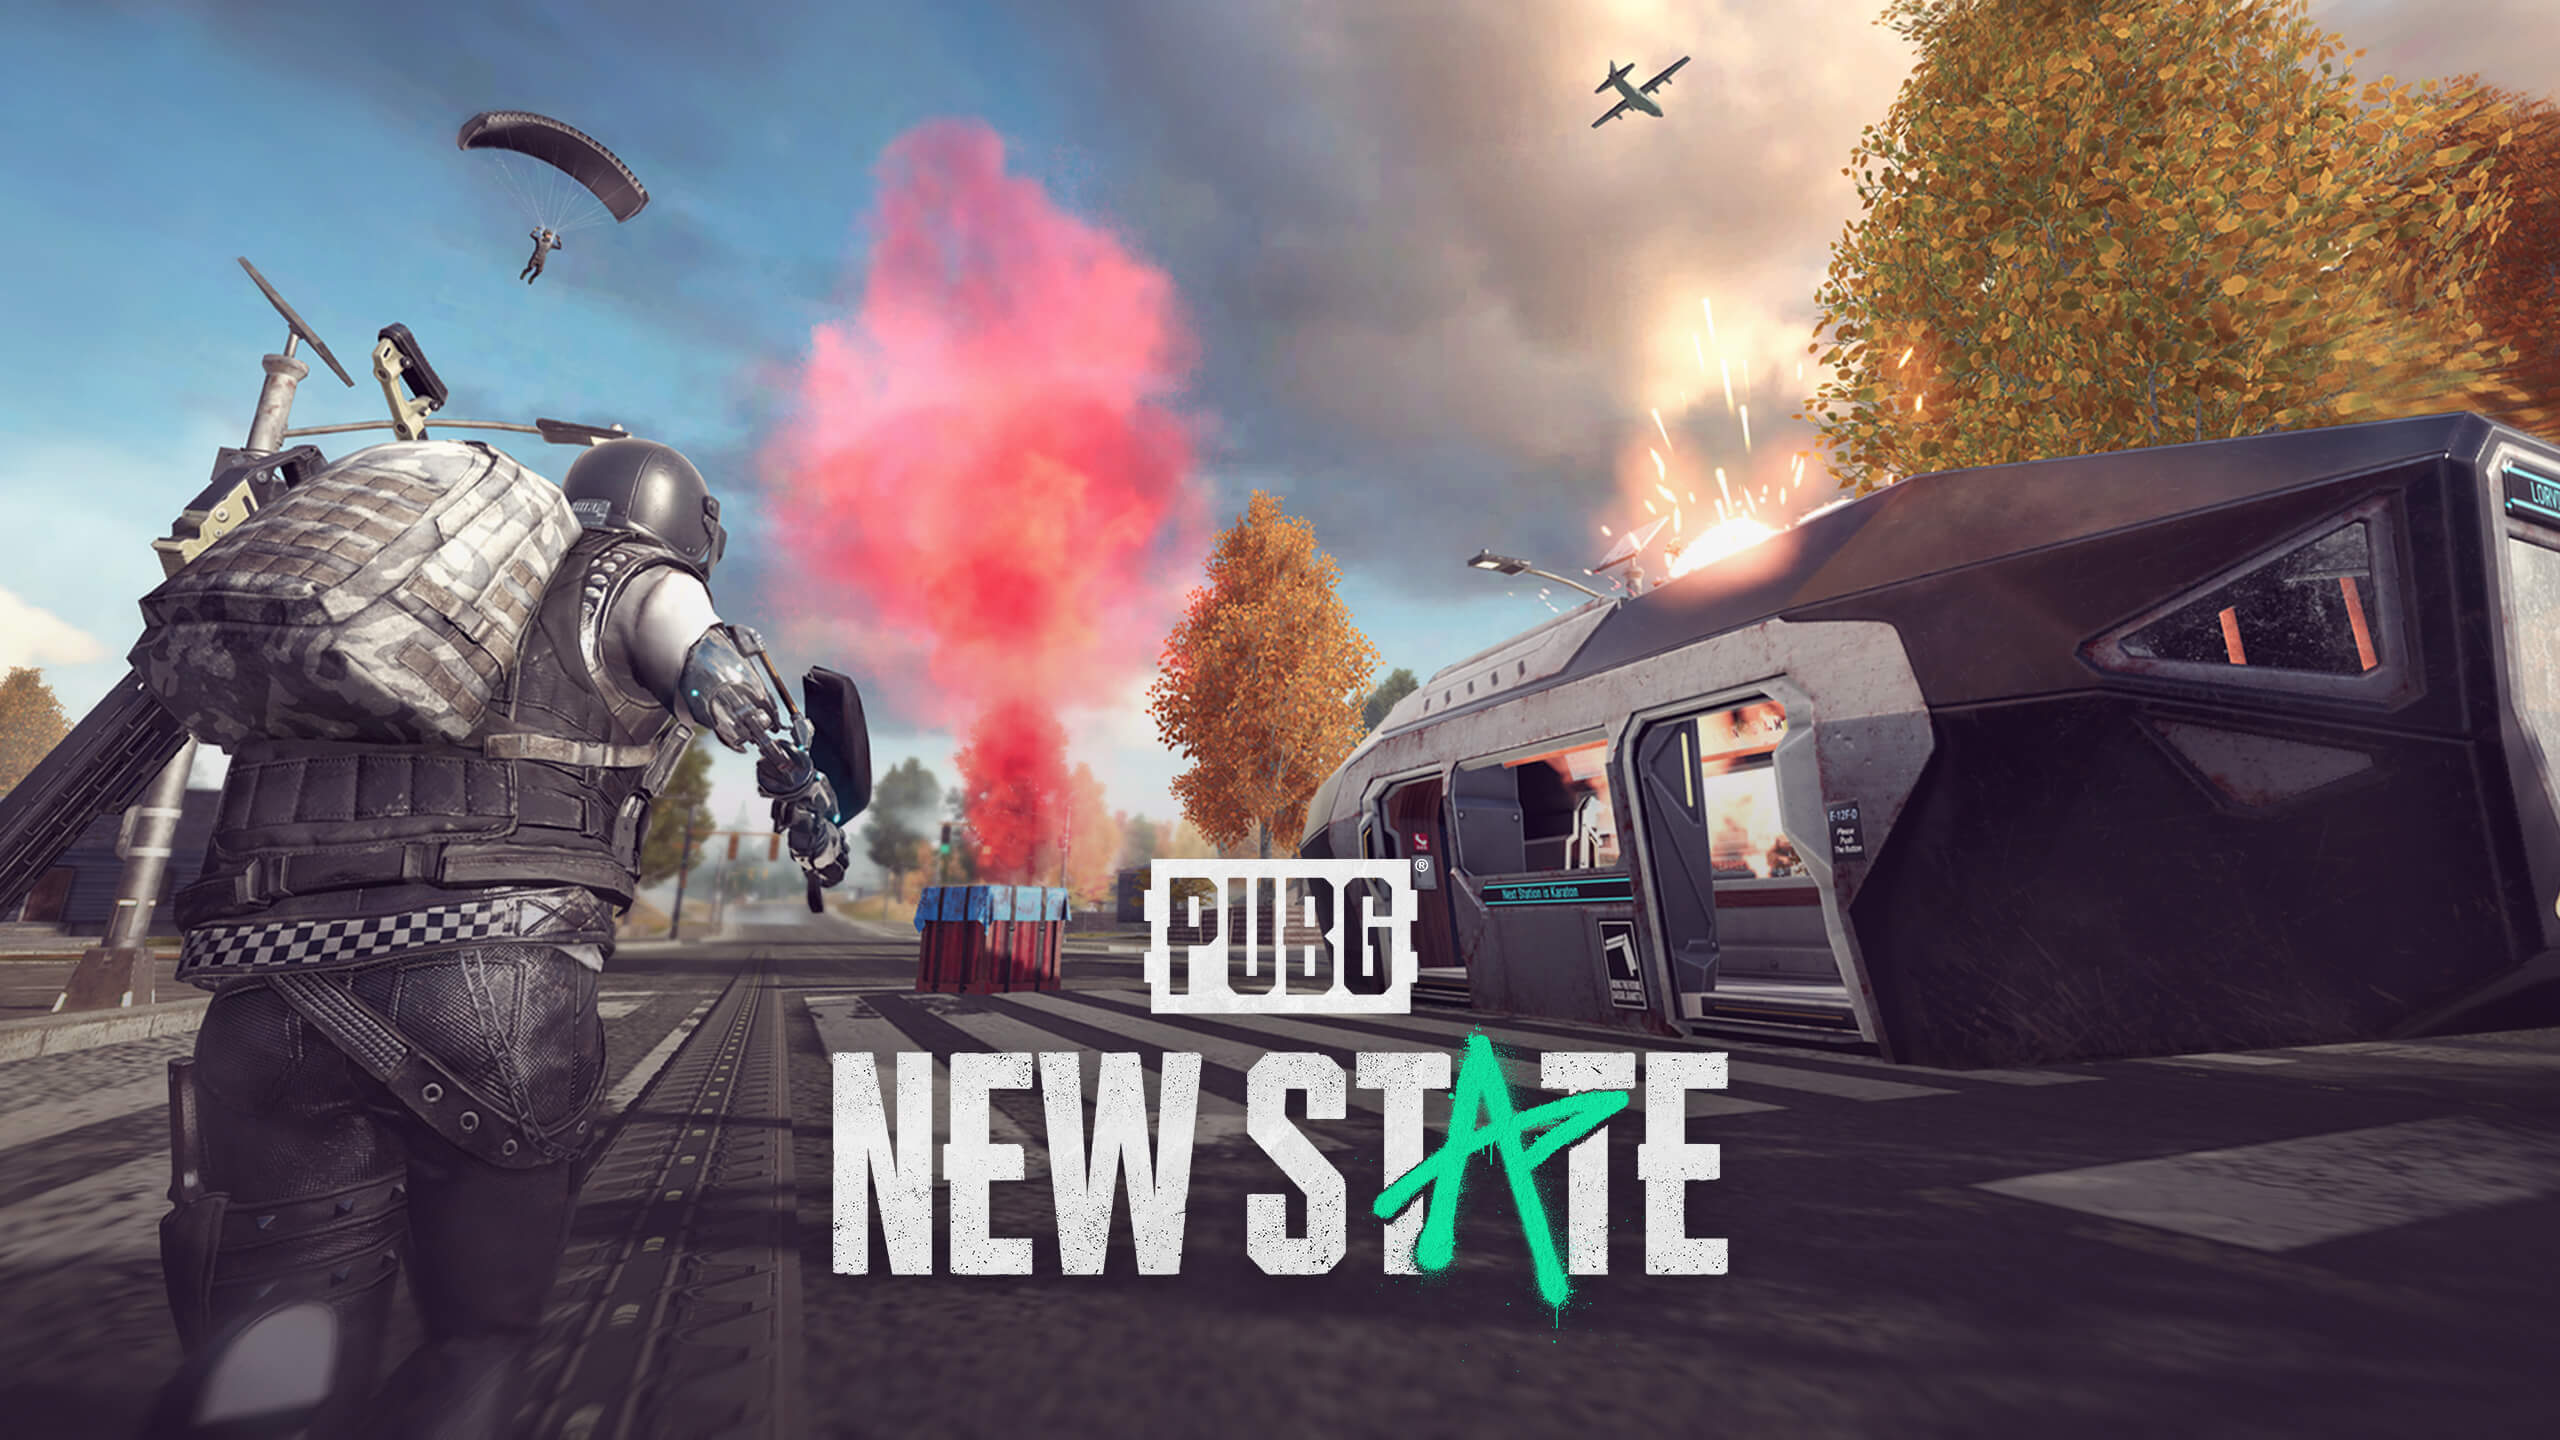 PUBG New States alpha test is launching in select regions soon 2560x1440